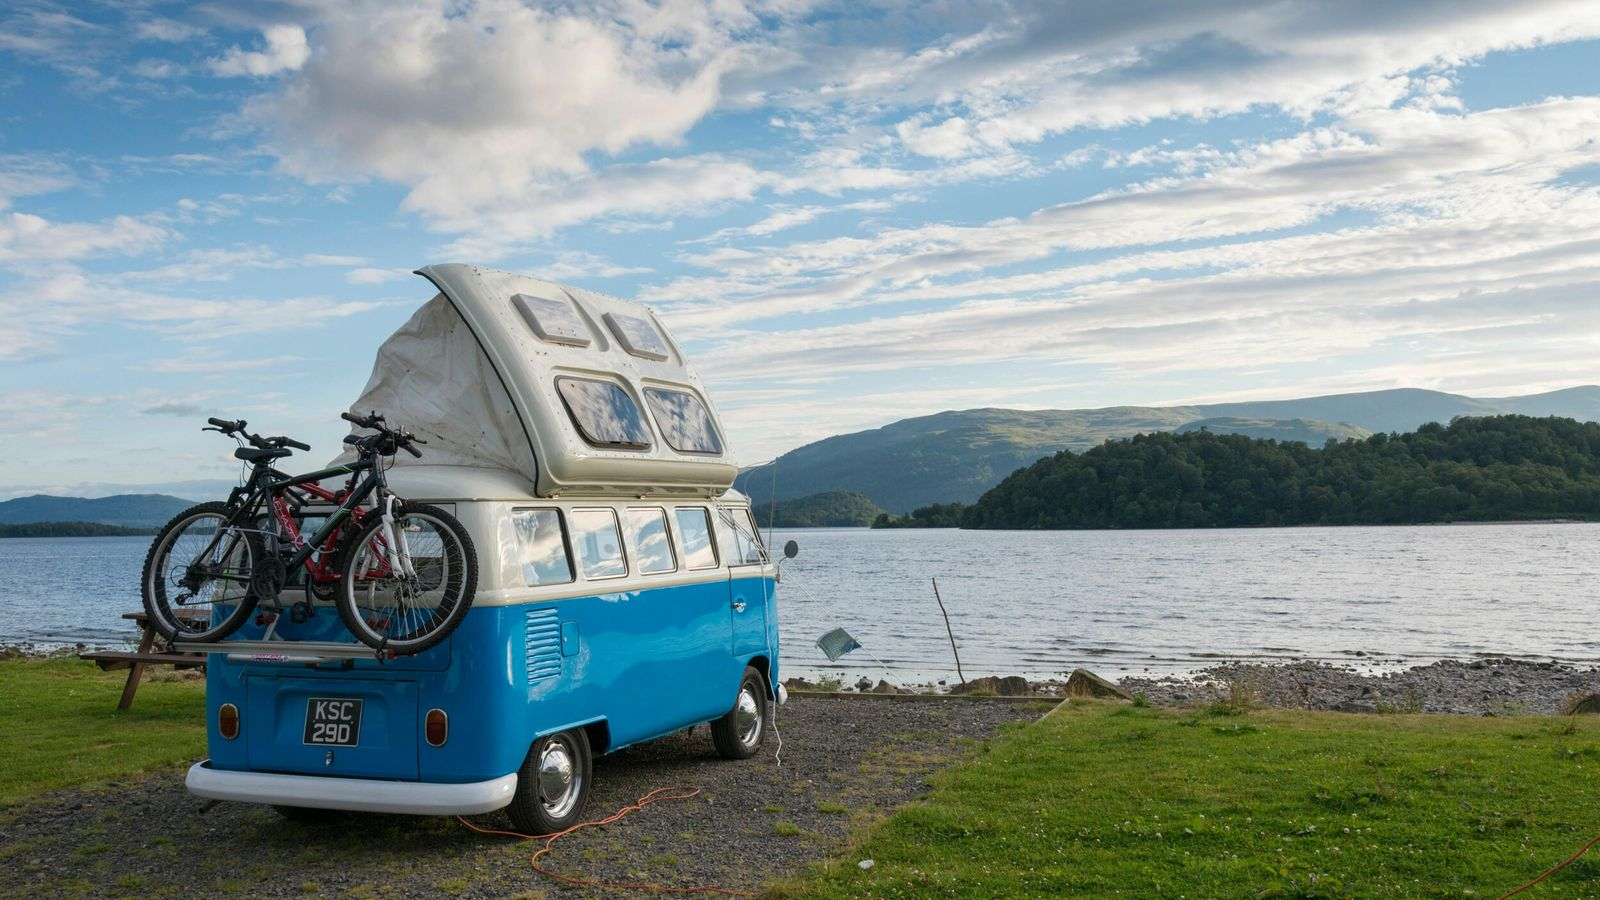 A blue VW campervan parked on the shore of Loch Lomond, Scotland.